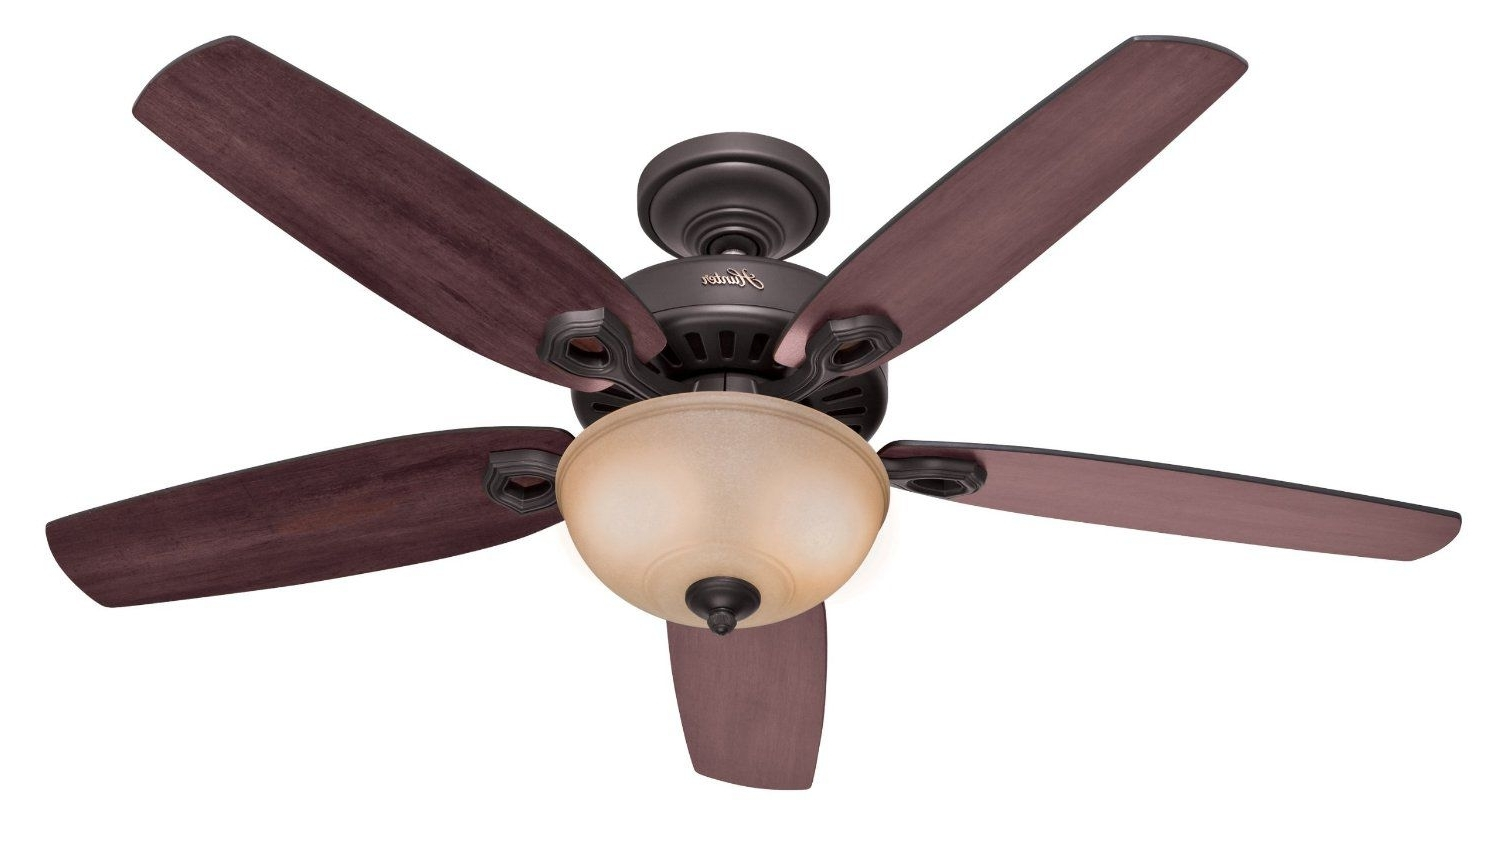 36 Inch Outdoor Ceiling Fans With Lights For 2019 The 7 Best Ceiling Fans To Buy In  (View 1 of 20)